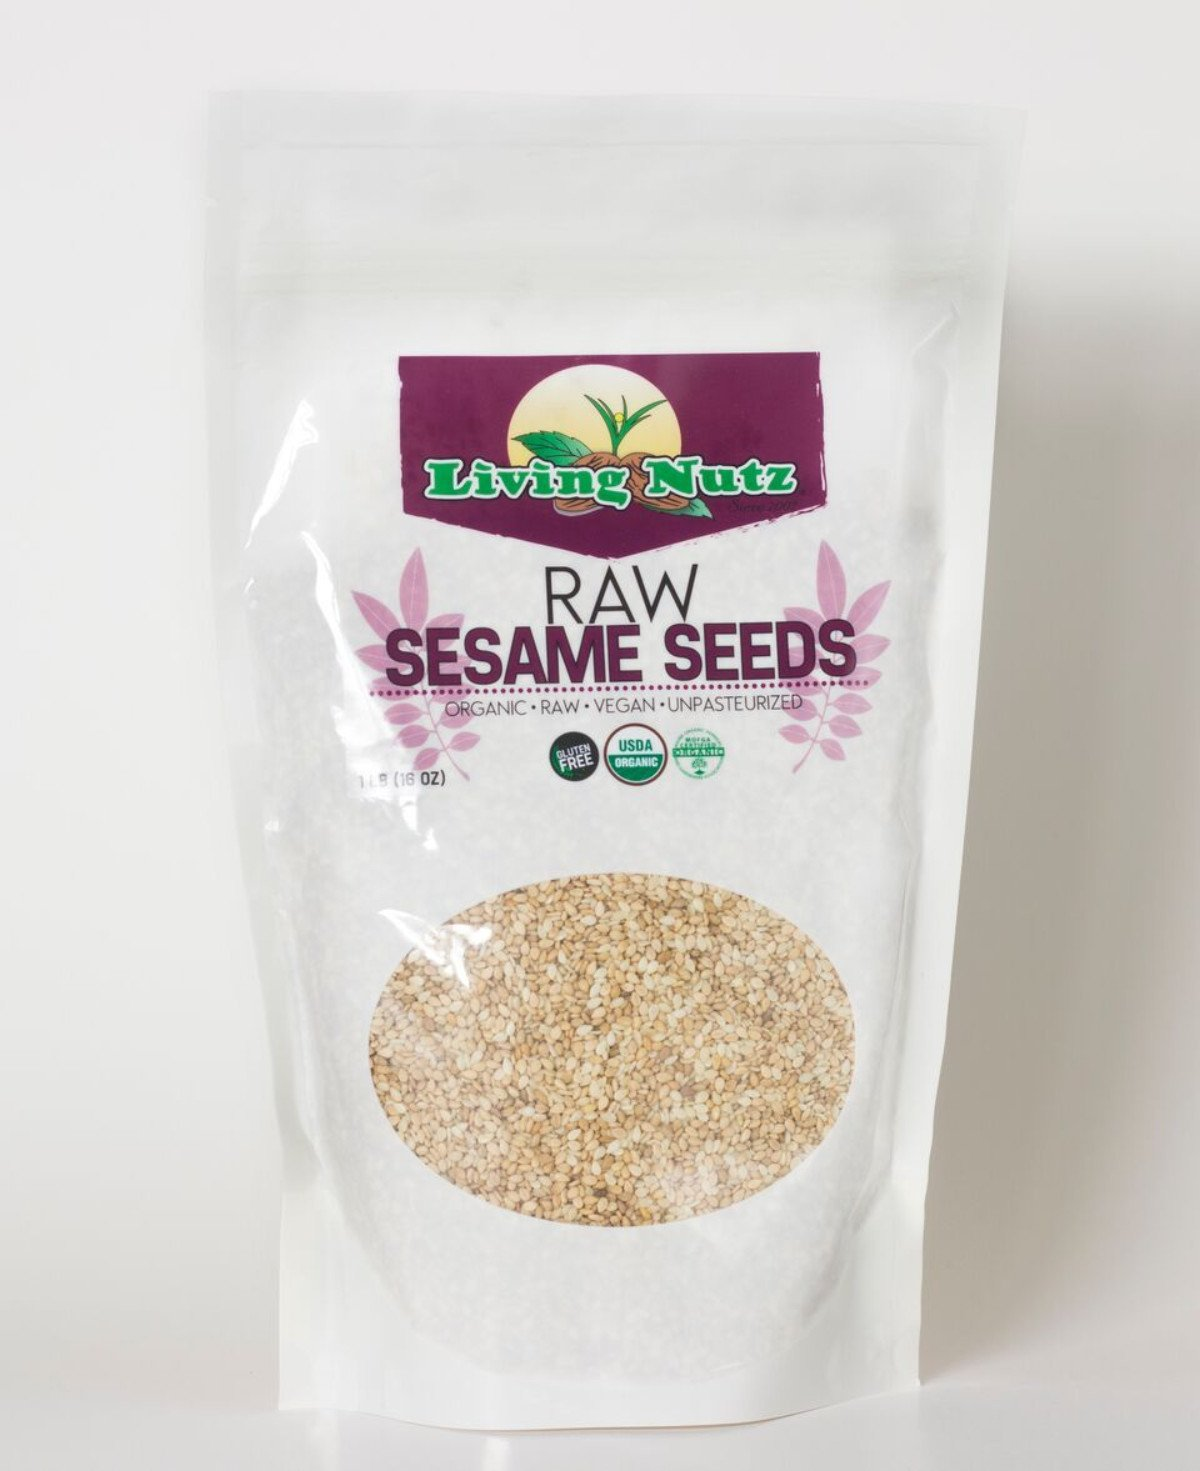 Raw organic sesame seeds. Sesame seeds for health